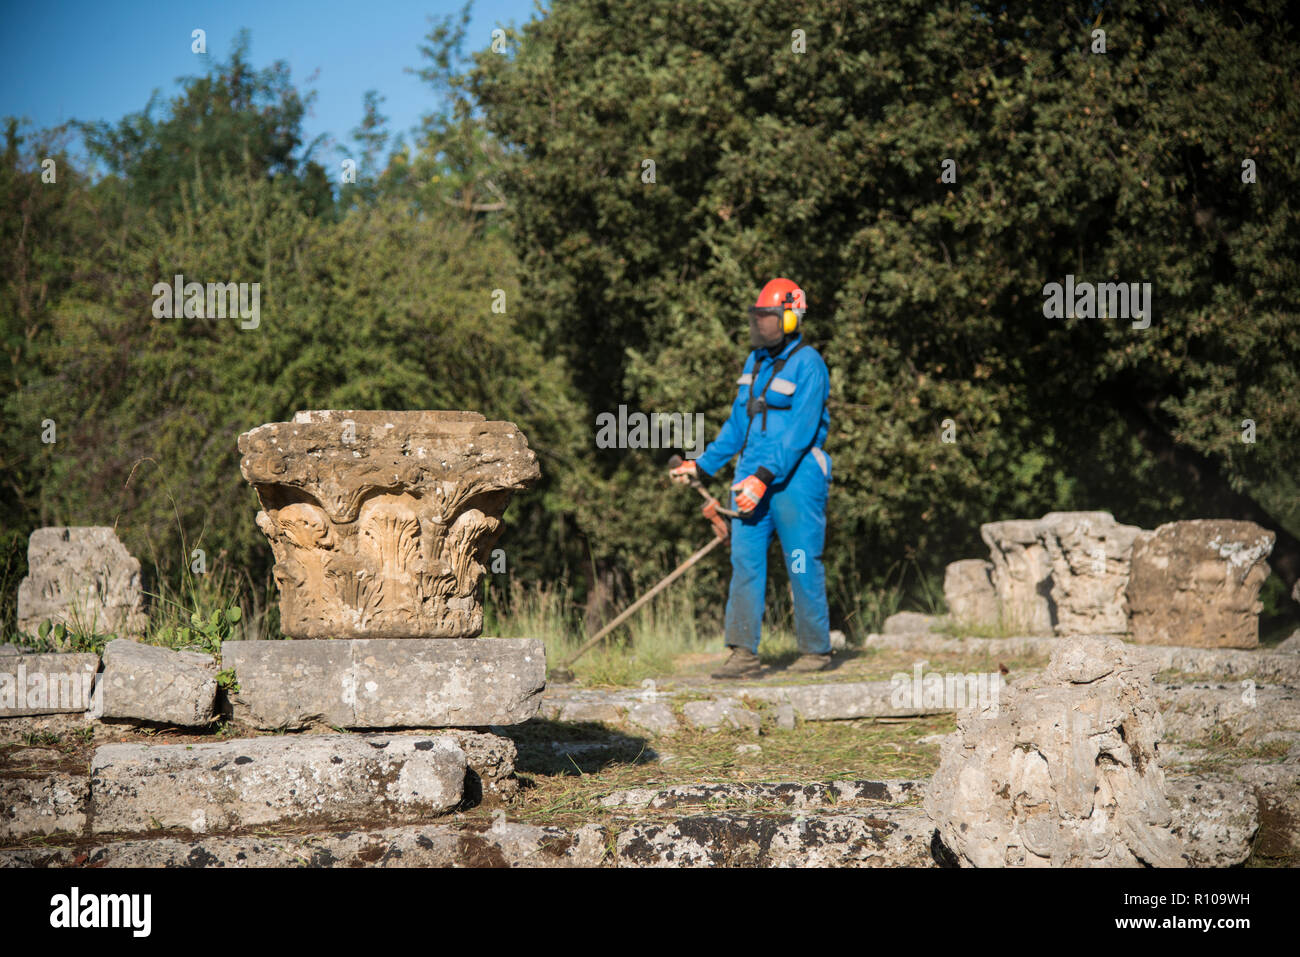 Grounds maintenance worker at Olympia. - Stock Image